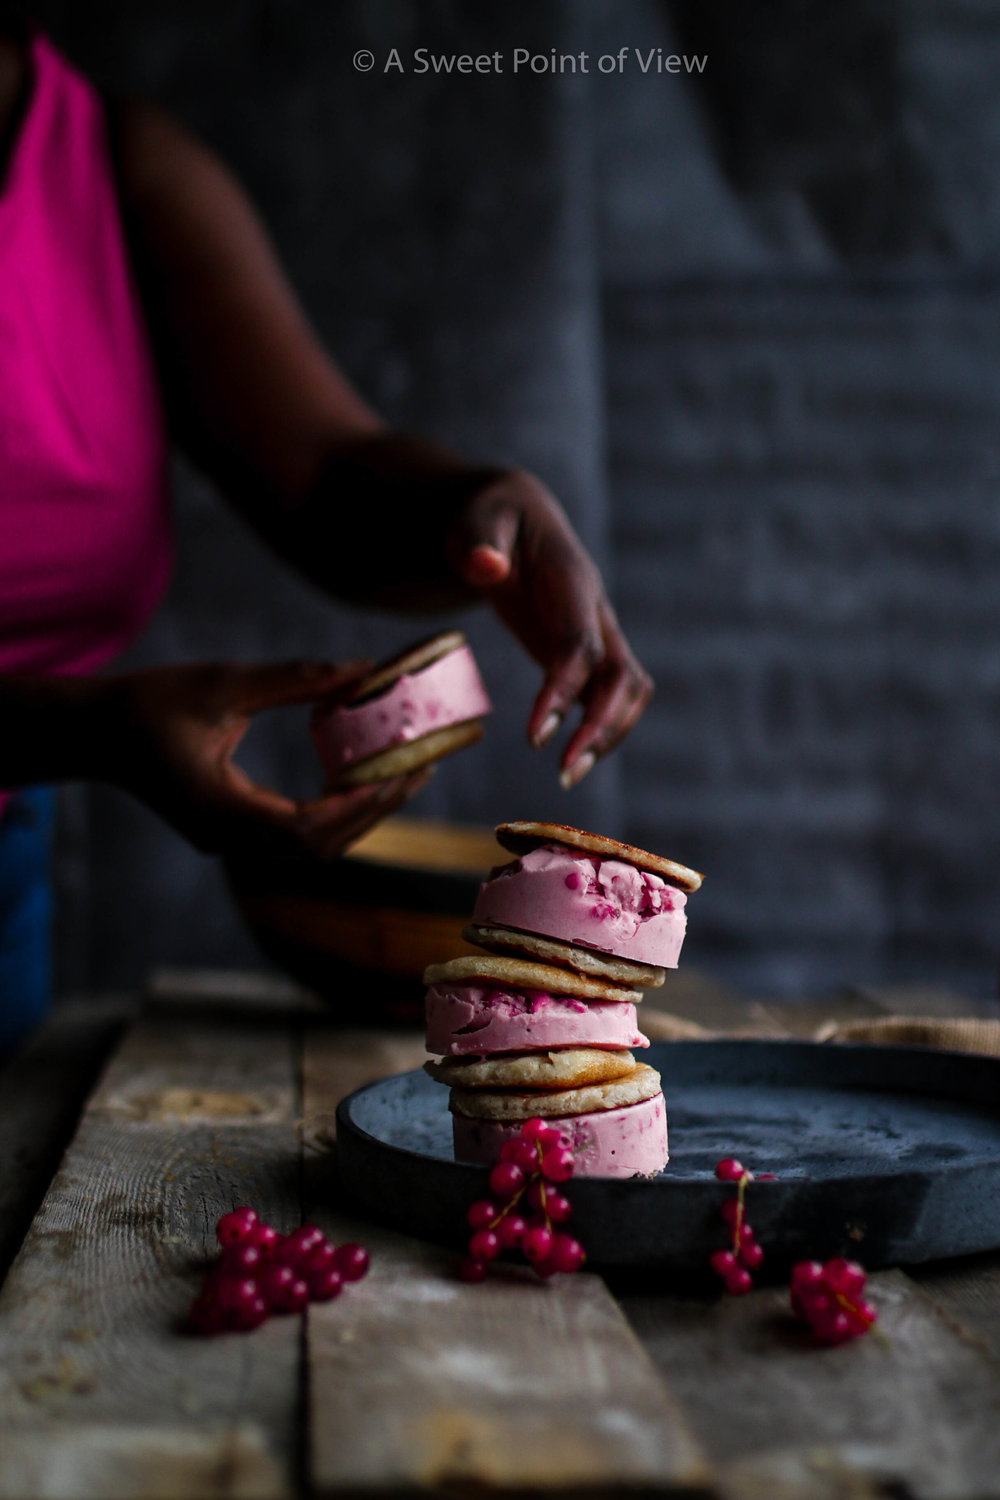 Hausa-Rice-Cake-Red-Current-Ice-Cream-Sandwiches-7-of-1.jpg